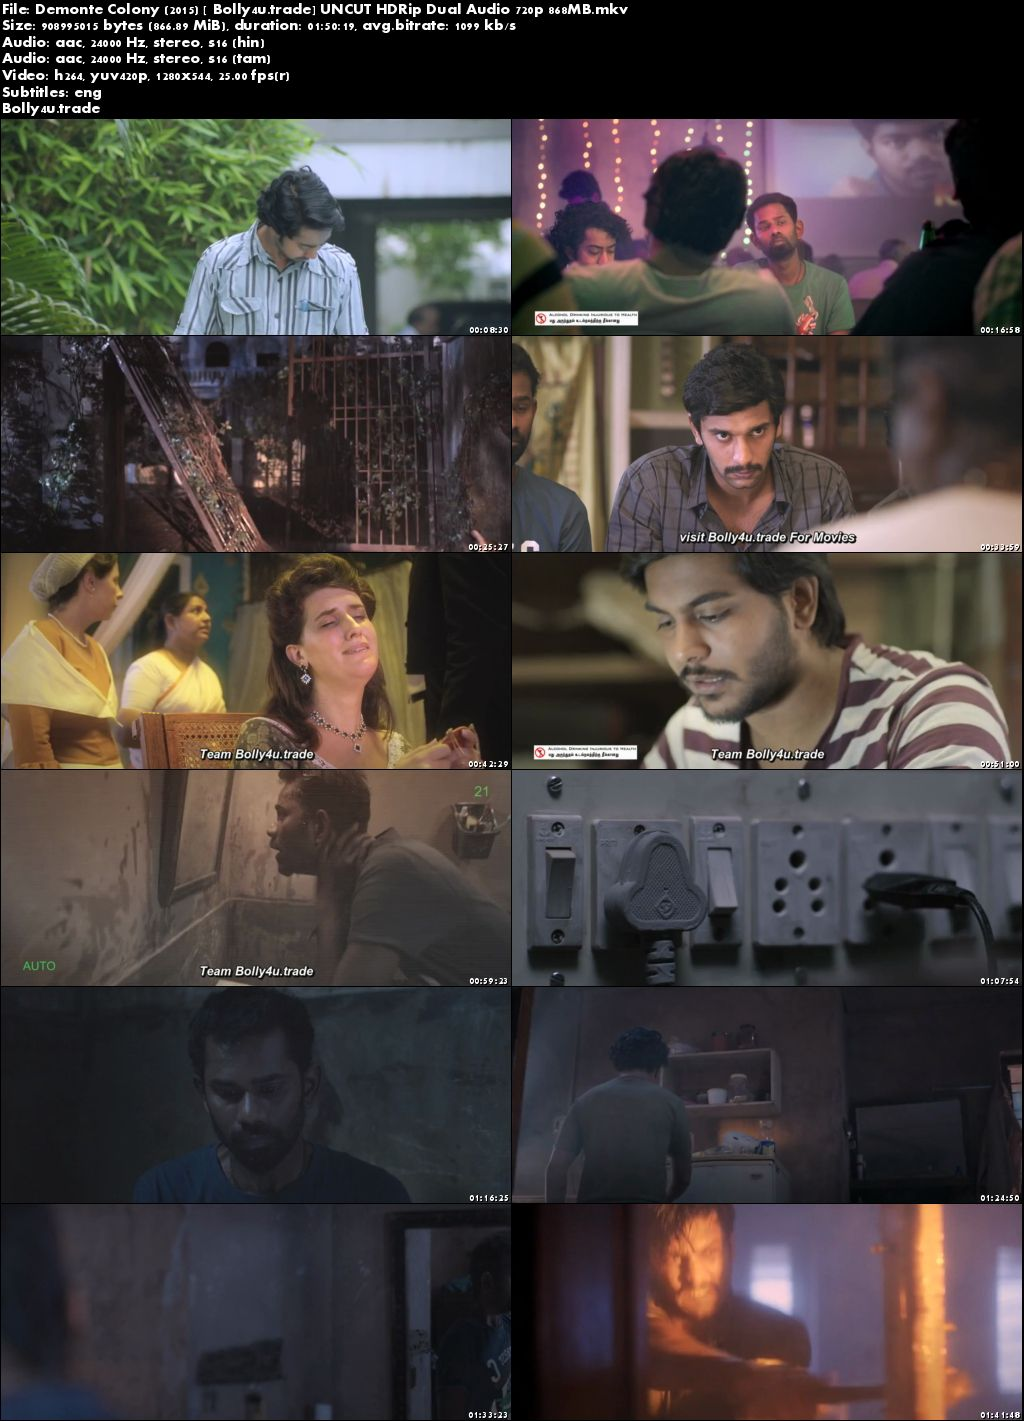 Demonte Colony 2015 HDRip 850MB UNCUT Hindi Dual Audio 720p Download